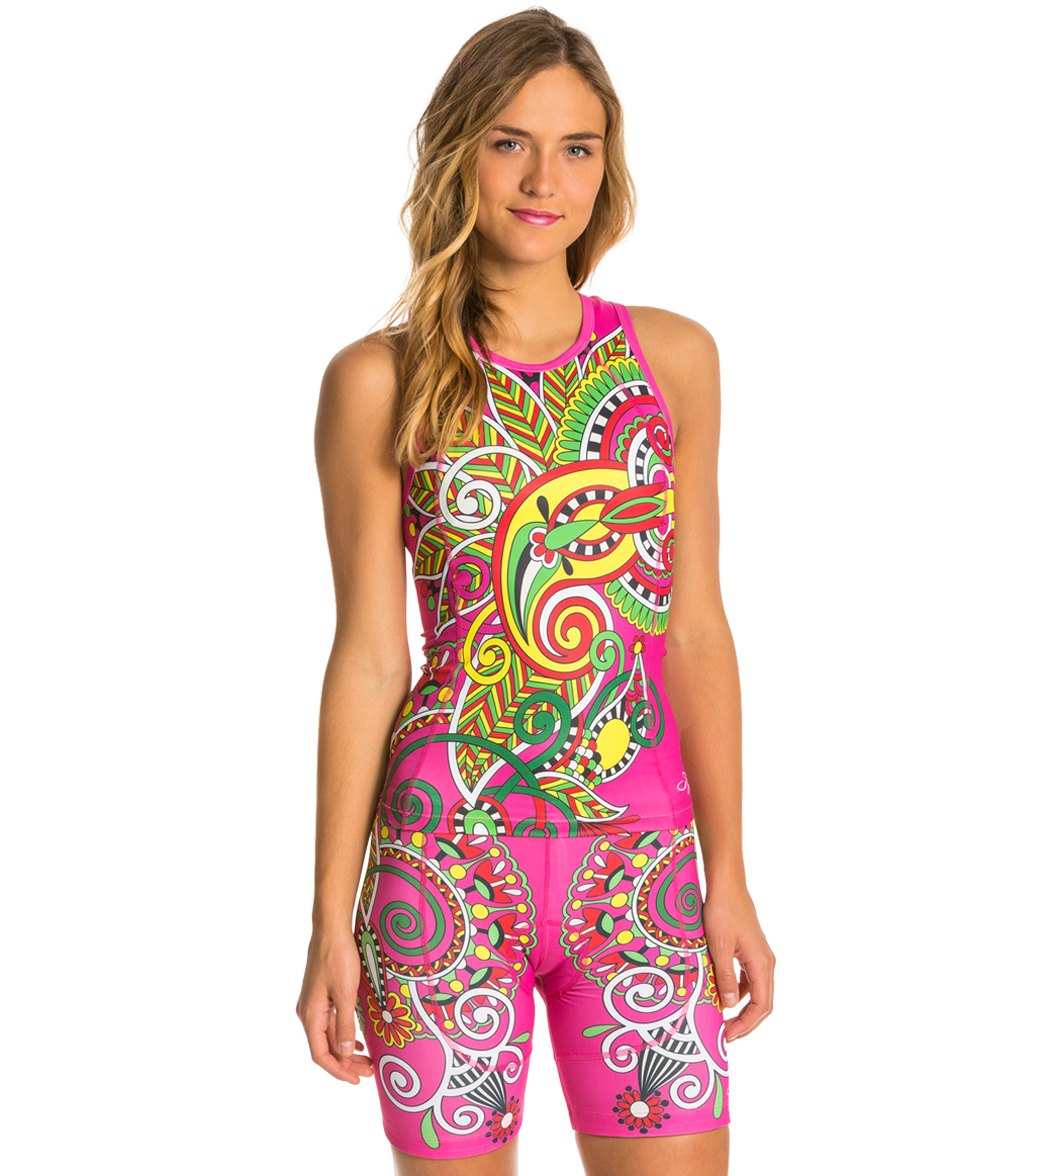 Triflare Women's Bollywood Triathlon Top at SwimOutlet.com